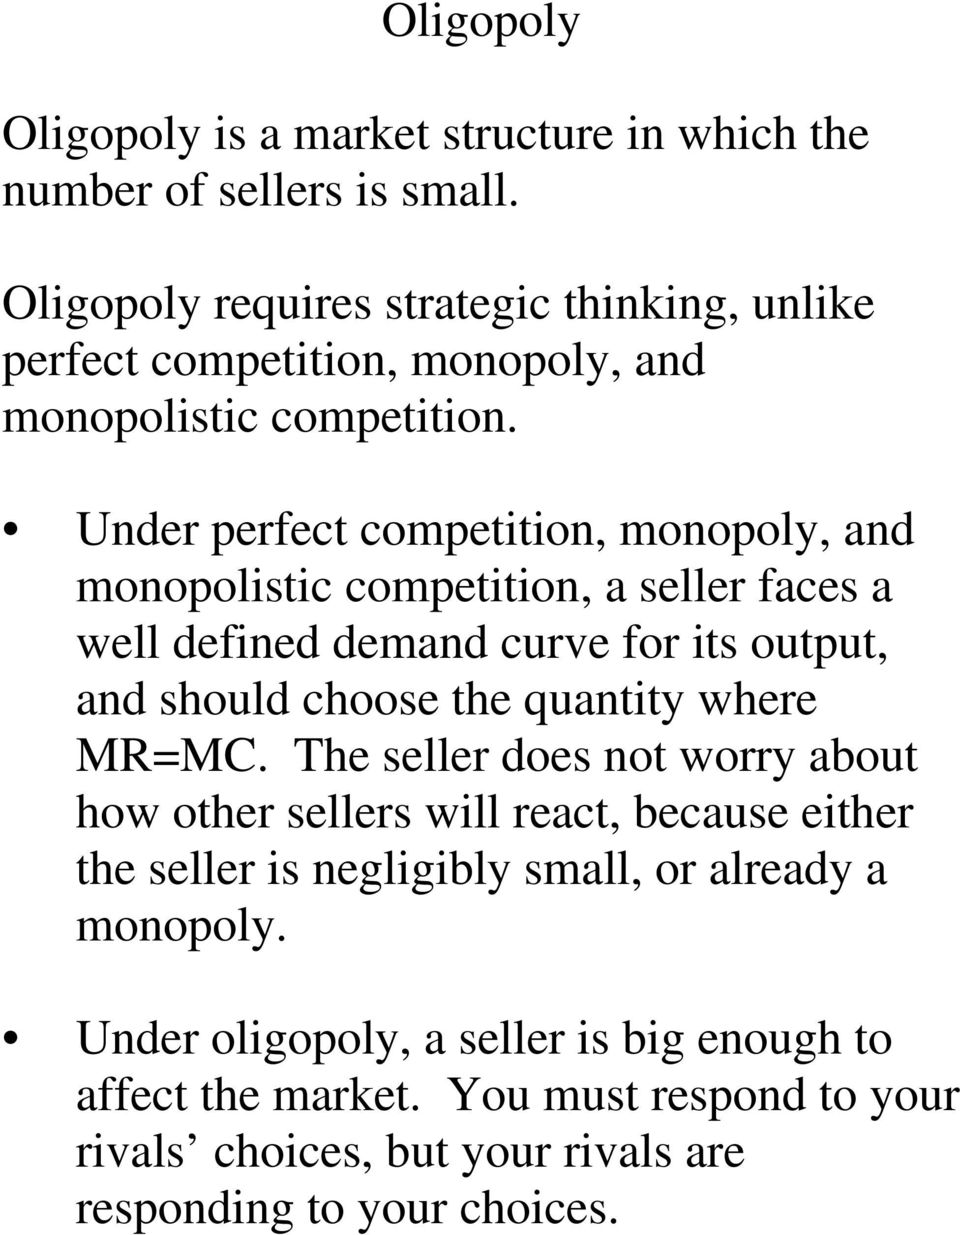 Under perfect competition, monopoly, and monopolistic competition, a seller faces a well defined demand curve for its output, and should choose the quantity